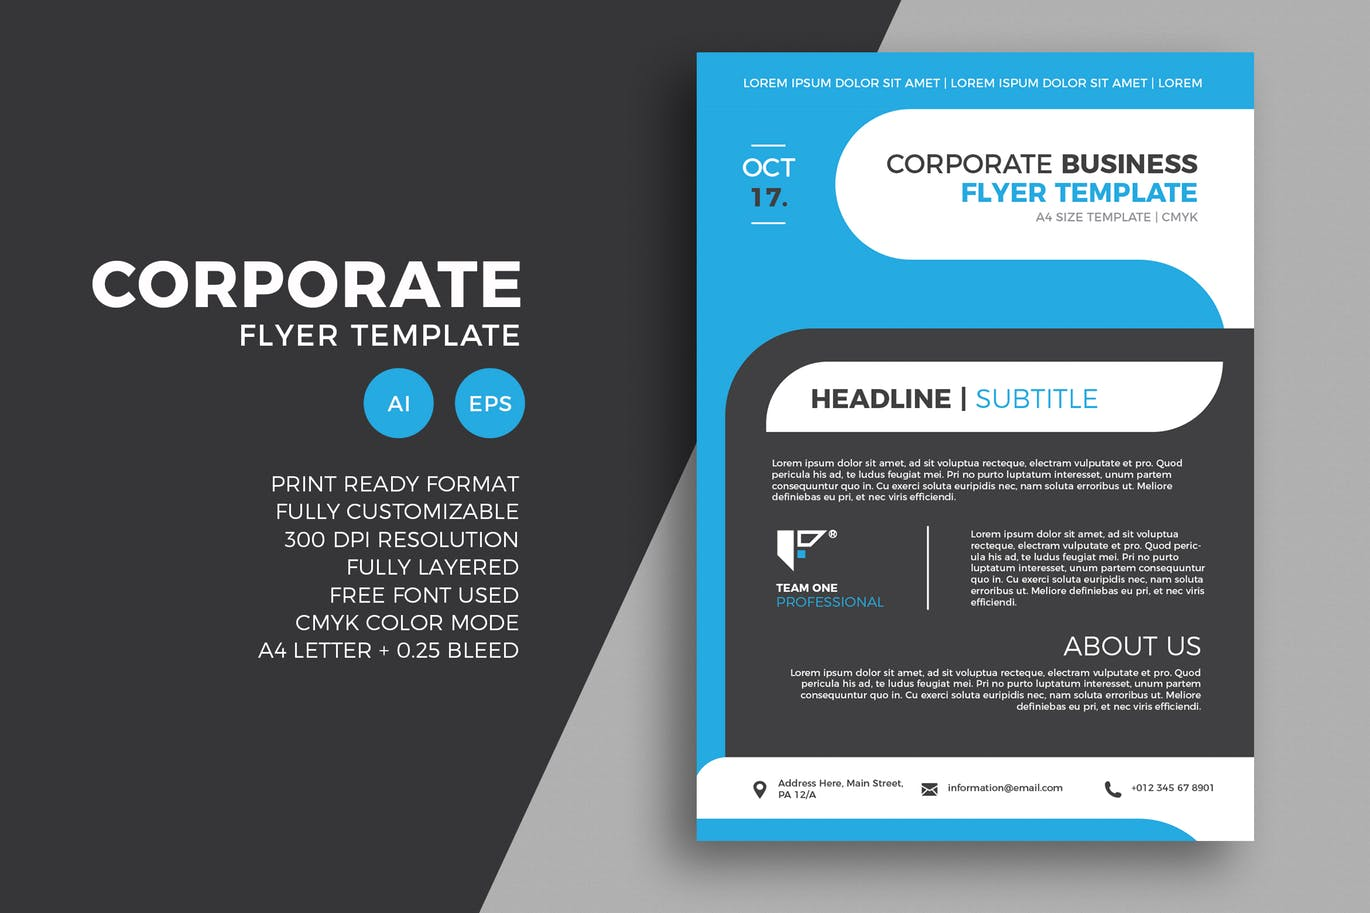 65 Creative Flyer Templates For Corporate Business Decolore